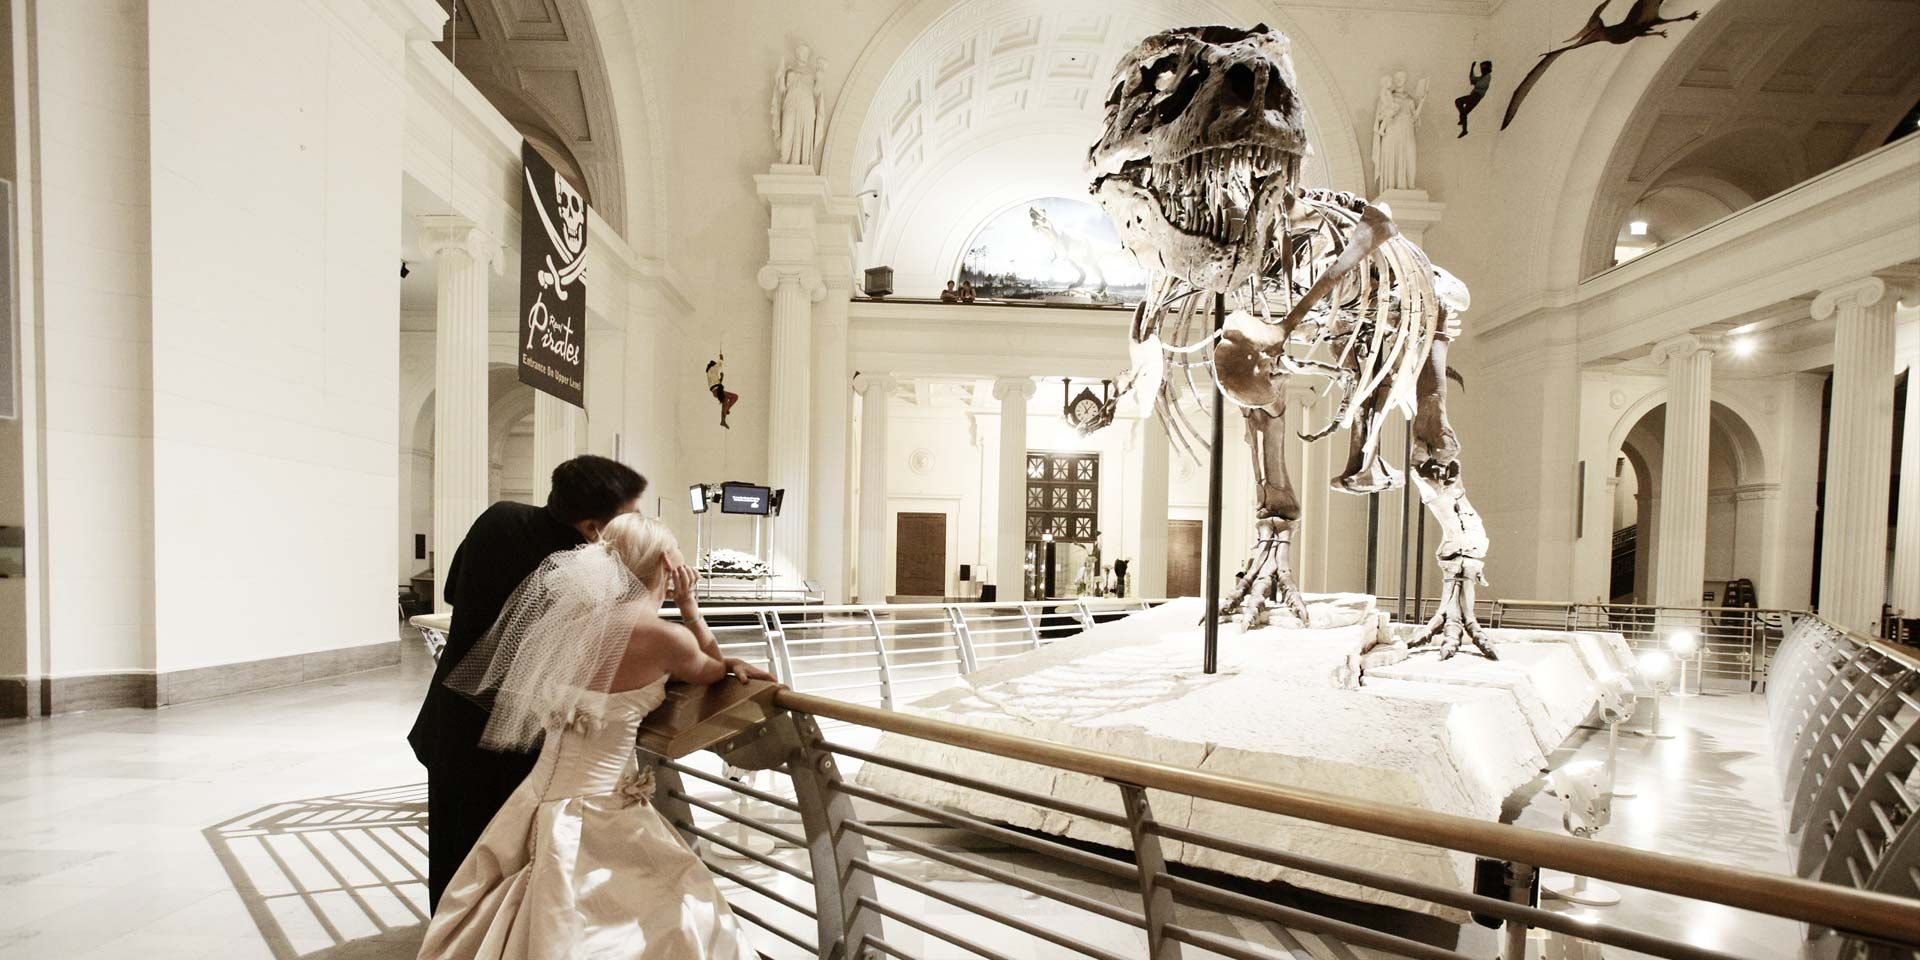 A couple weds in a museum  | Photo: Magnet Street